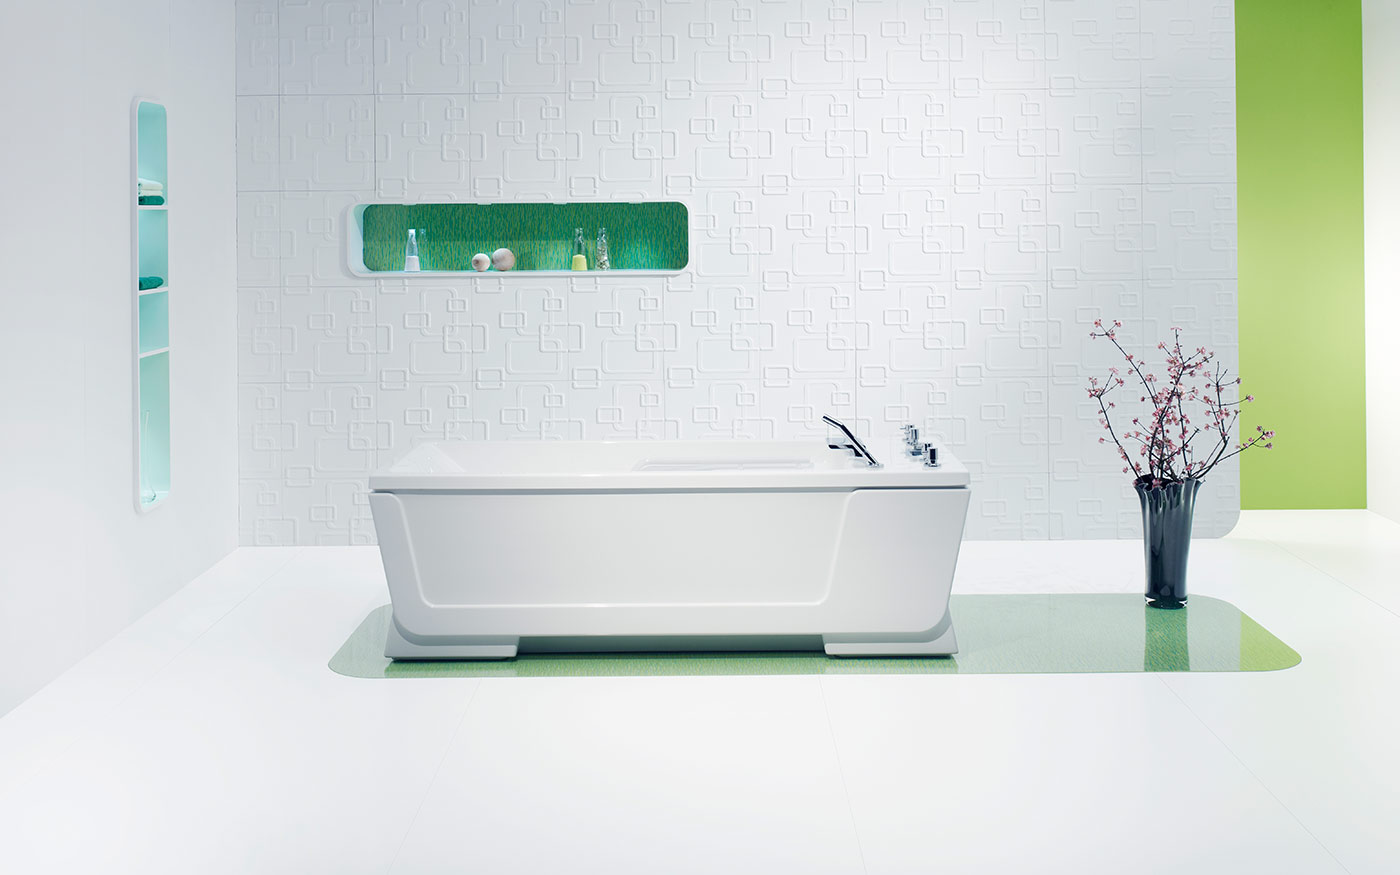 Avantgarde massage tub